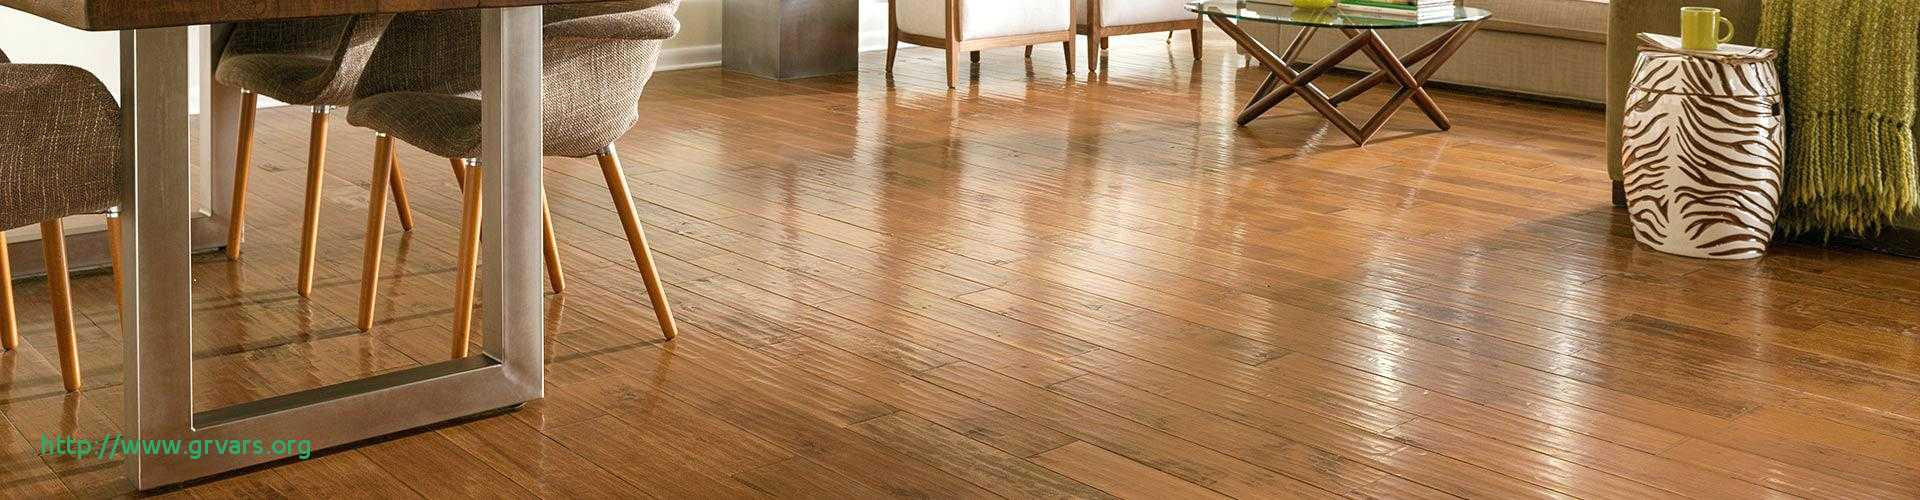 How to Lay Hardwood Flooring On Plywood Of How Much Does Lowes Charge to Install Hardwood Flooring Inspirant Od Pertaining to How Much Does Lowes Charge to Install Hardwood Flooring Inspirant Od Grain Tile Bathroom Wood Shower No Grout Porcelain Pros and Cons